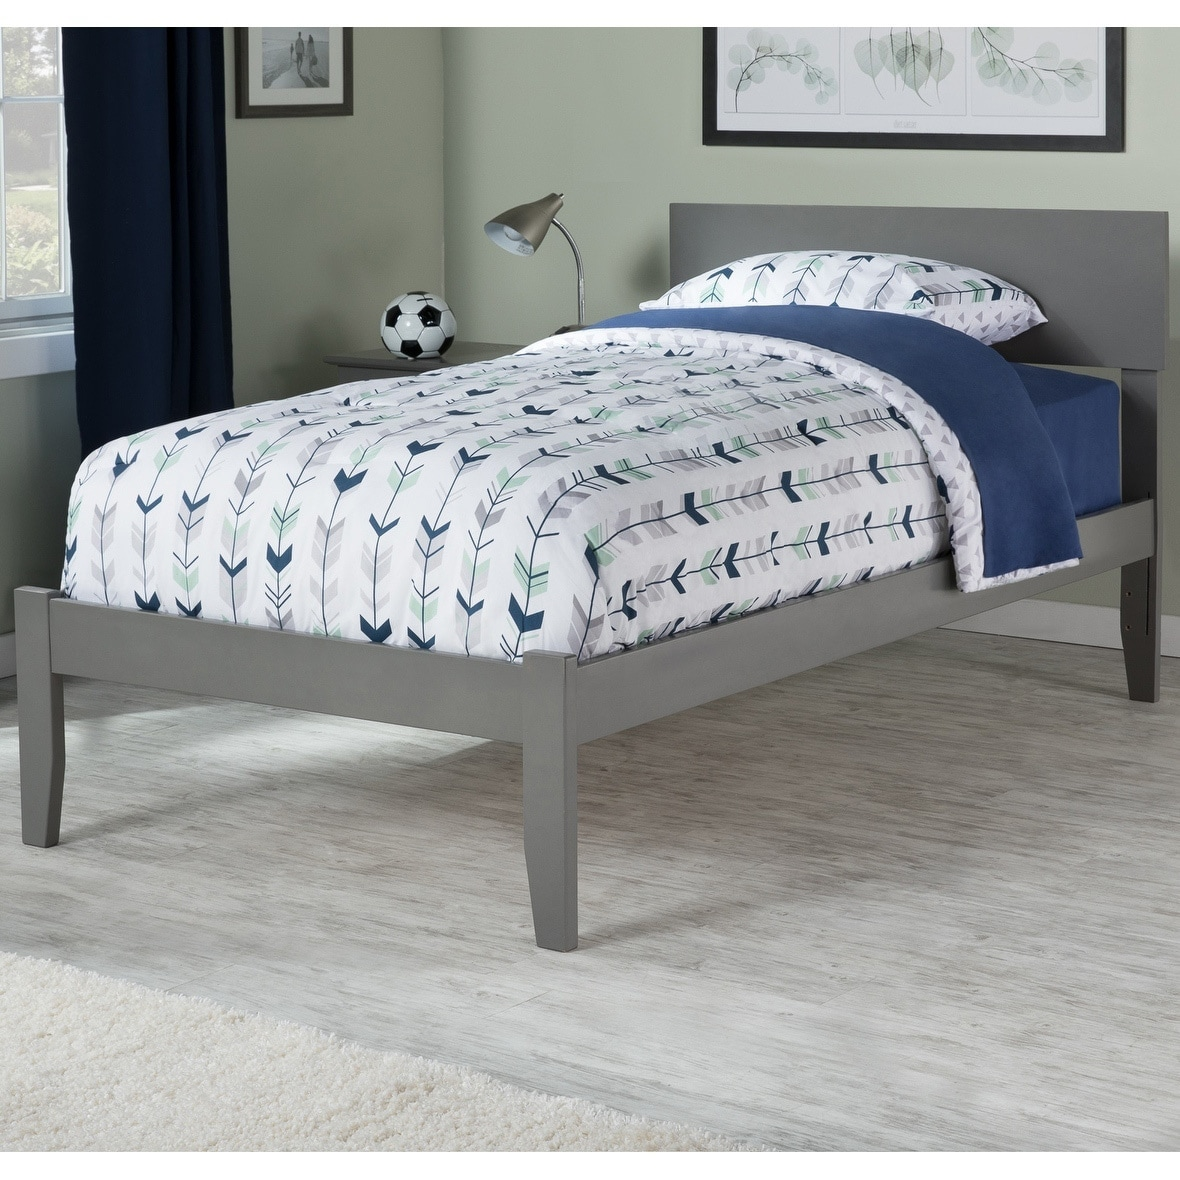 Orlando Twin Xl Platform Bed With Open Foot Board In Atlantic Grey By Furniture